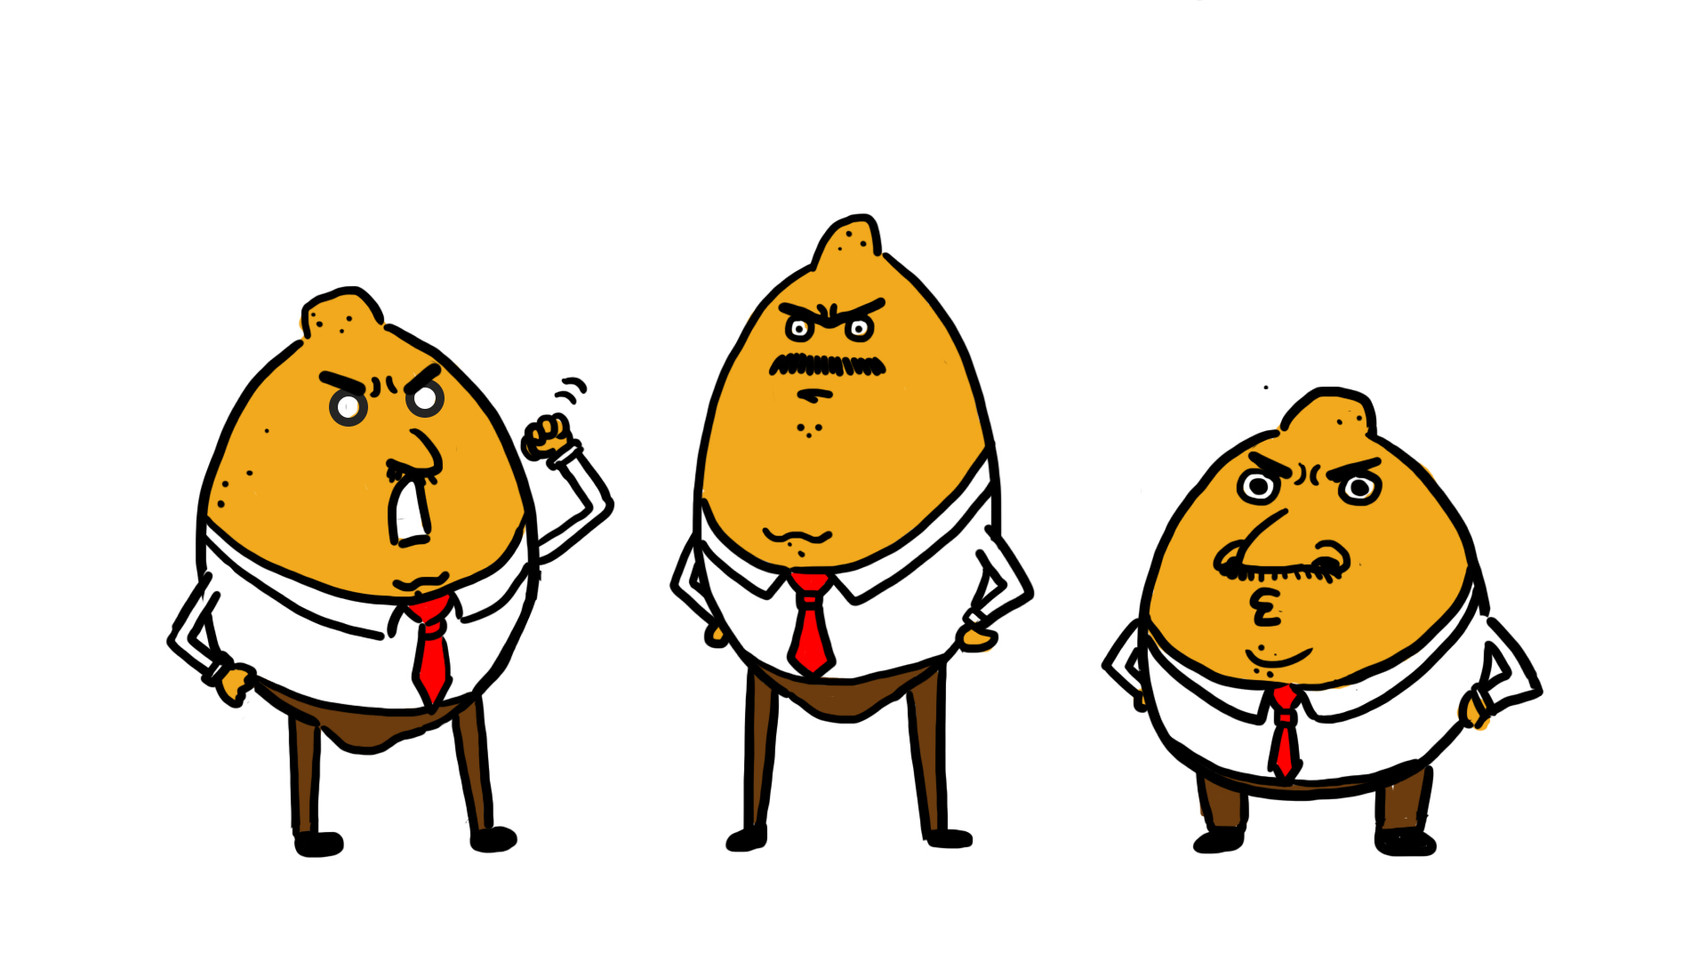 Sour Lemon Boss for 'The Married Life of Corn Cob and Sweet Potato' Short